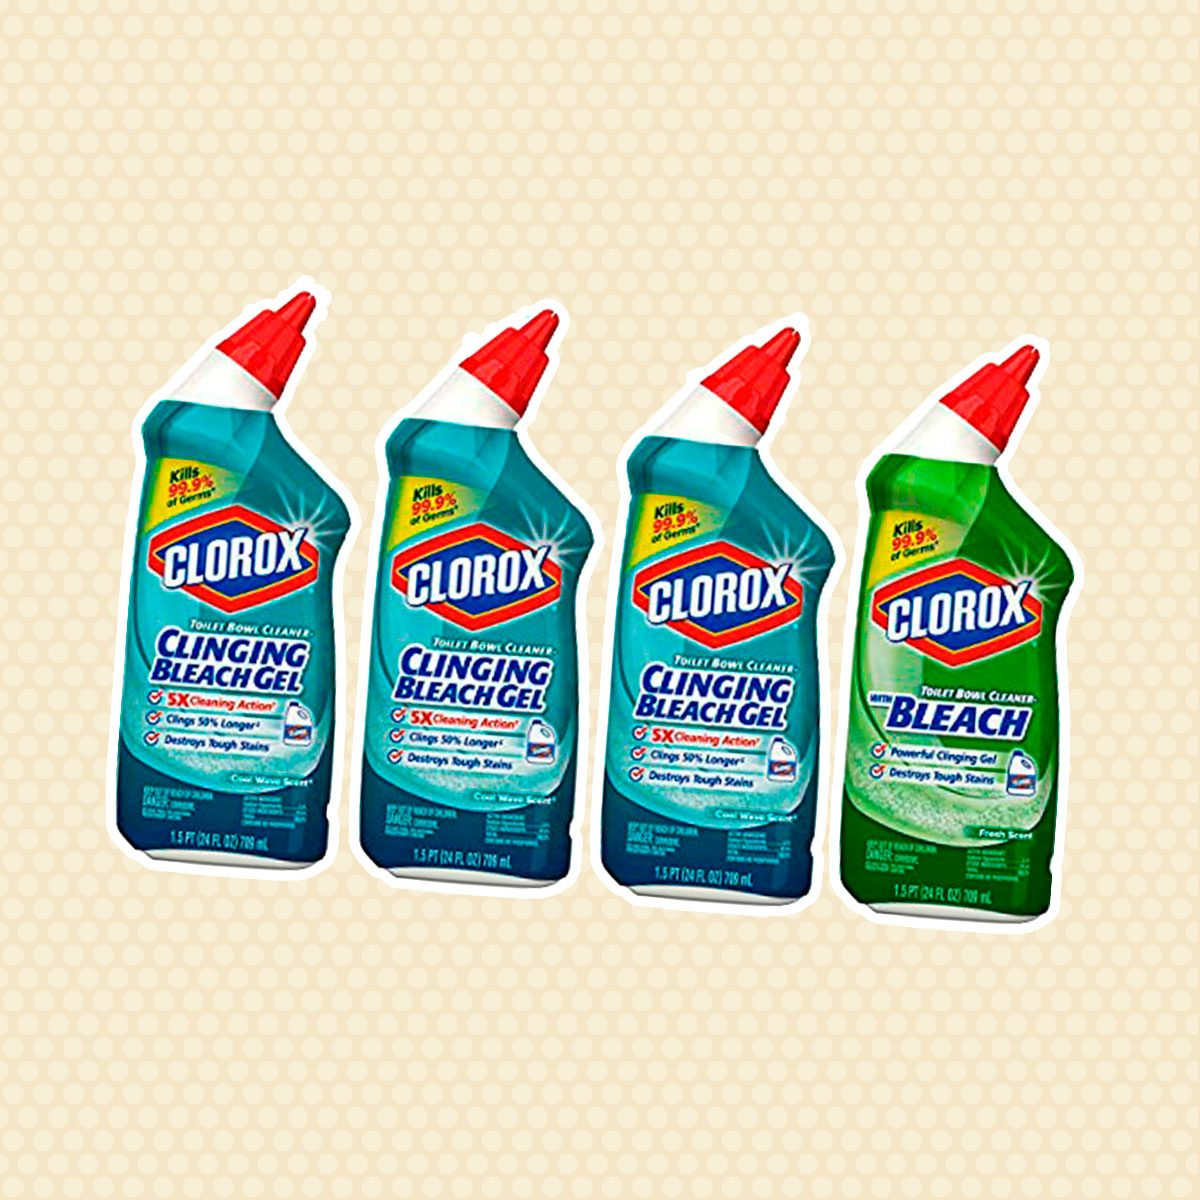 Clorox Toilet Bowl Cleaner with Bleach Variety Pack - 24 Ounces, 4 Pack (Packaging May Vary)